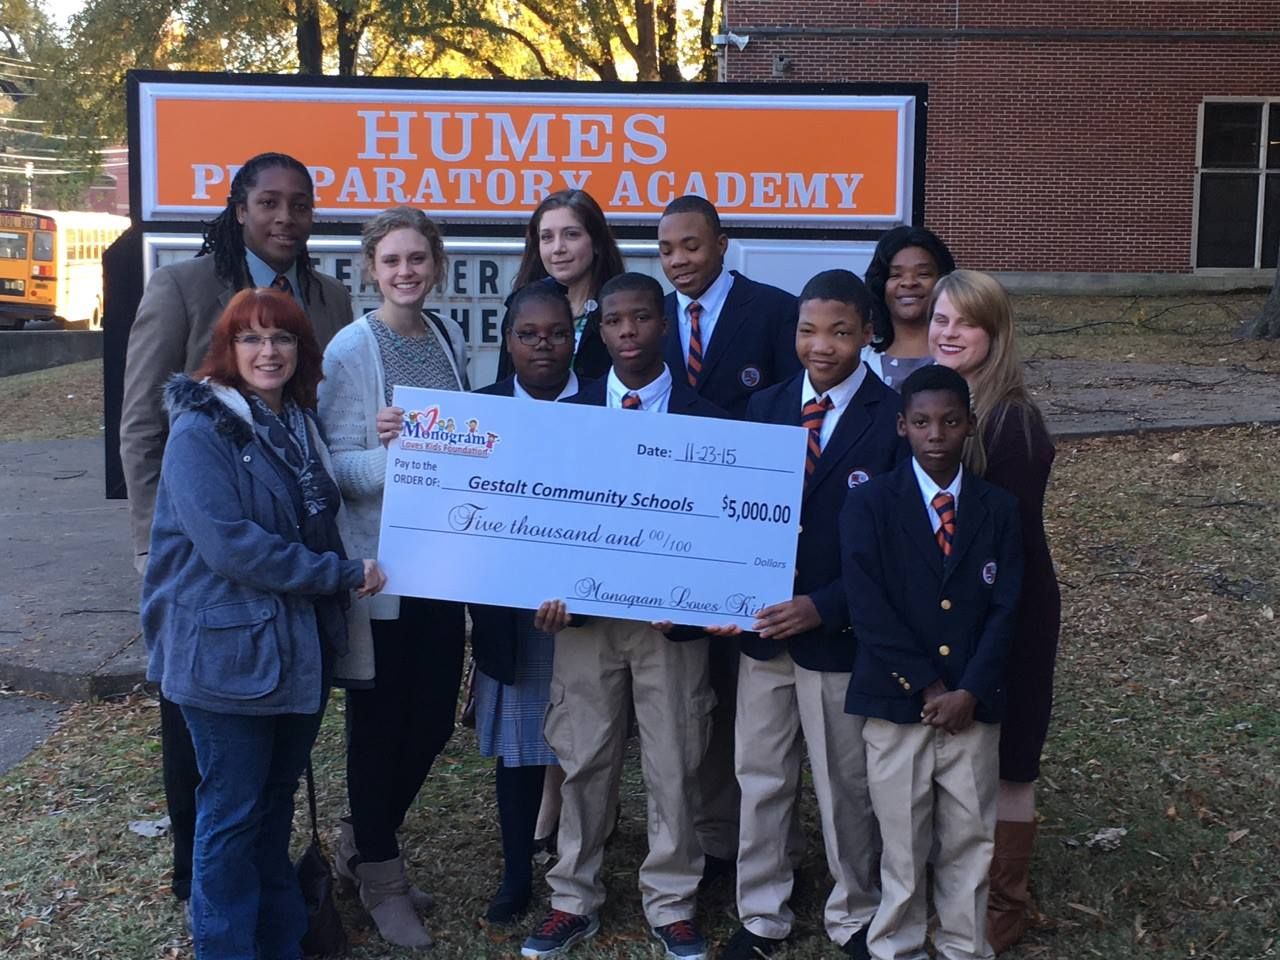 teens from Humes Preparatory Academy hold a novelty check showing a $5,000 donation from the Monogram Loves Kids Foundation